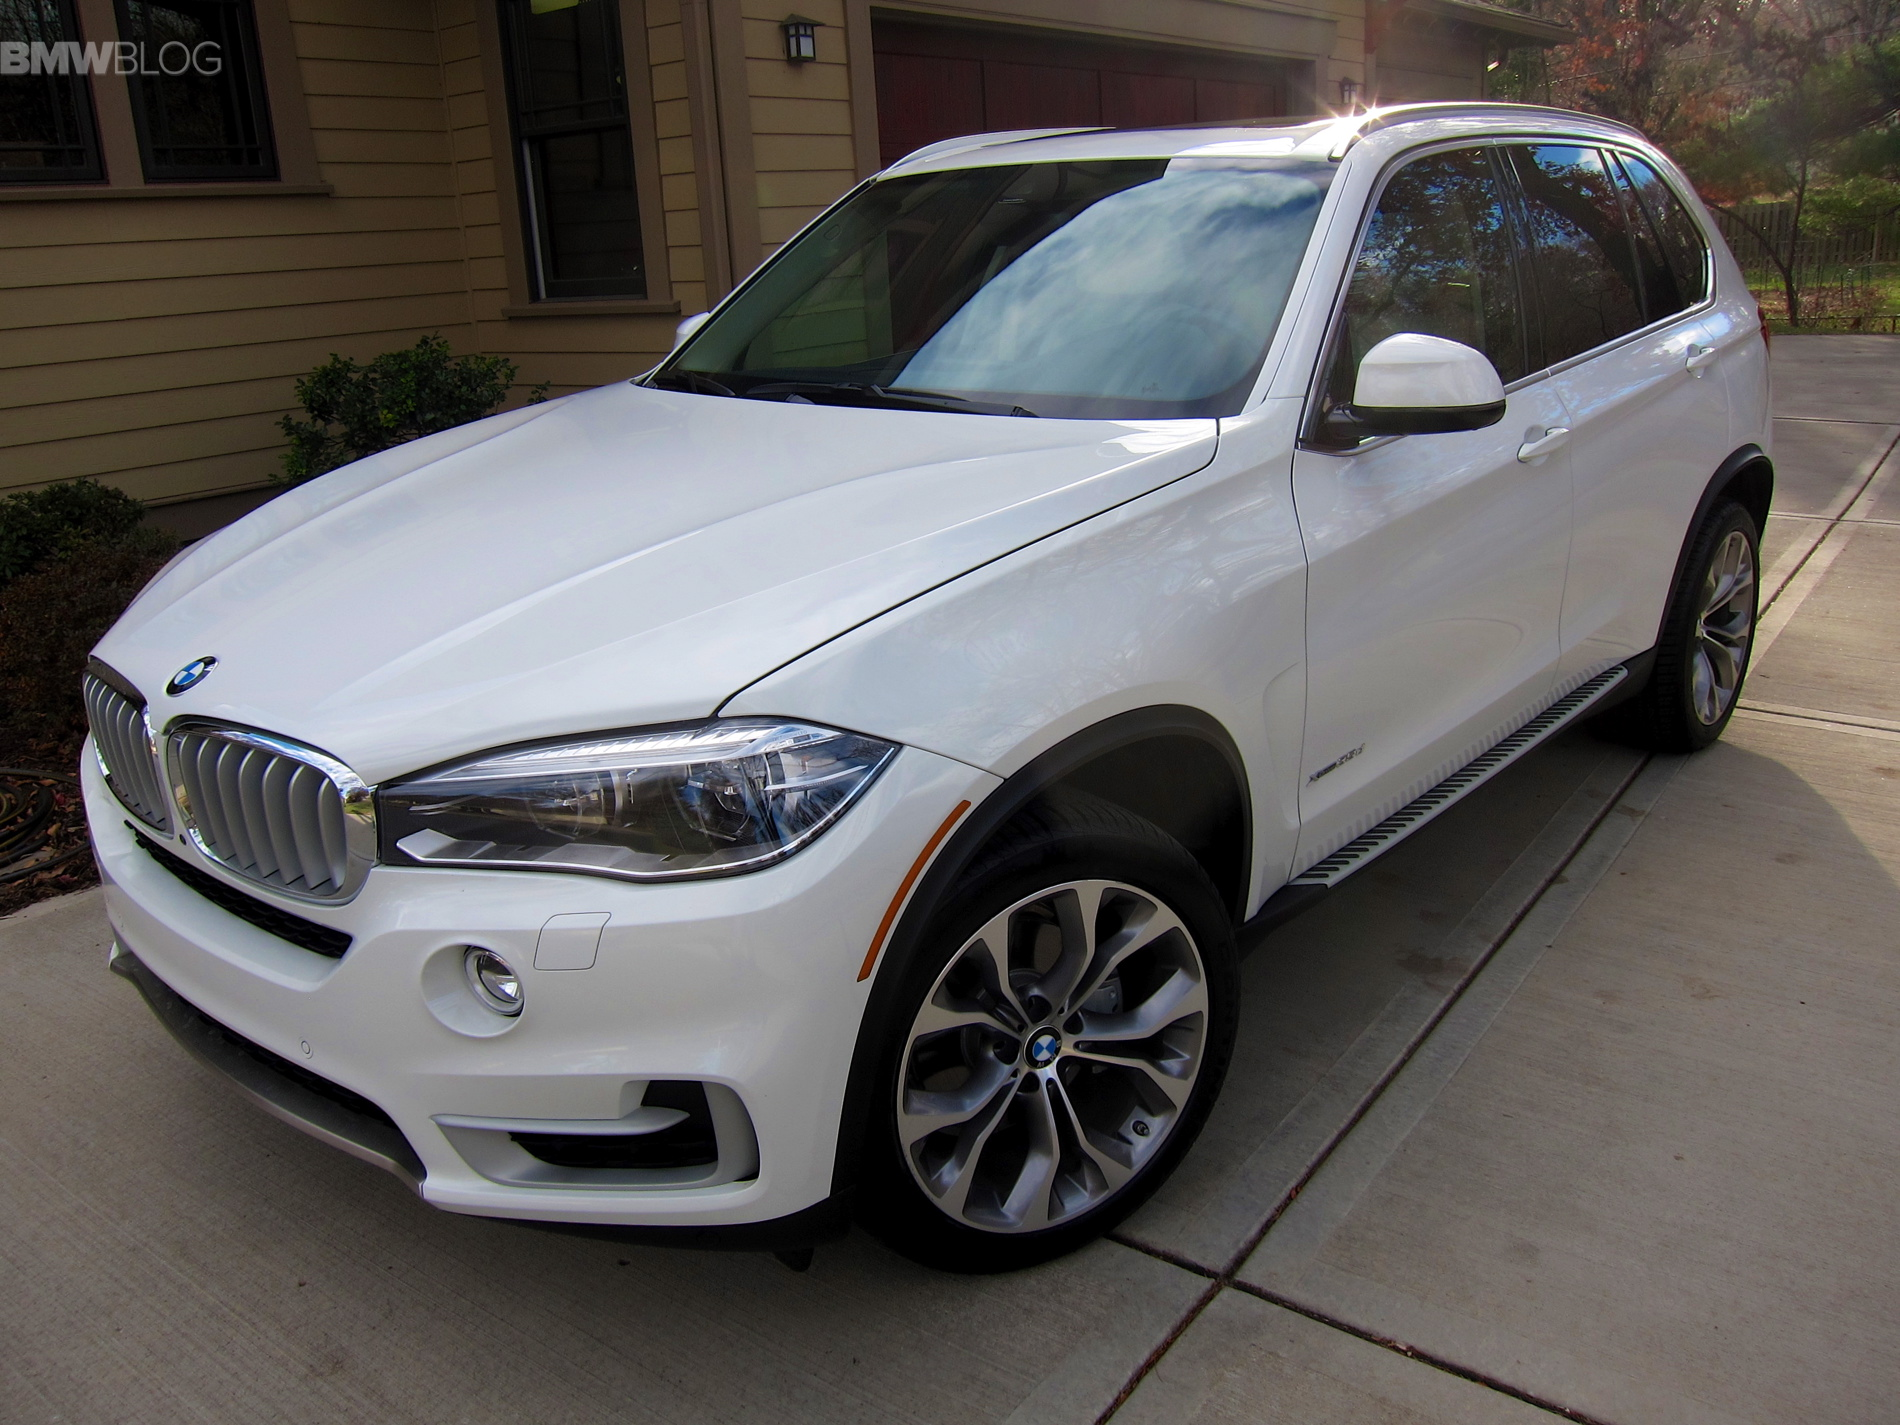 2015 bmw x5 xdrive35d images 1900x1200 23